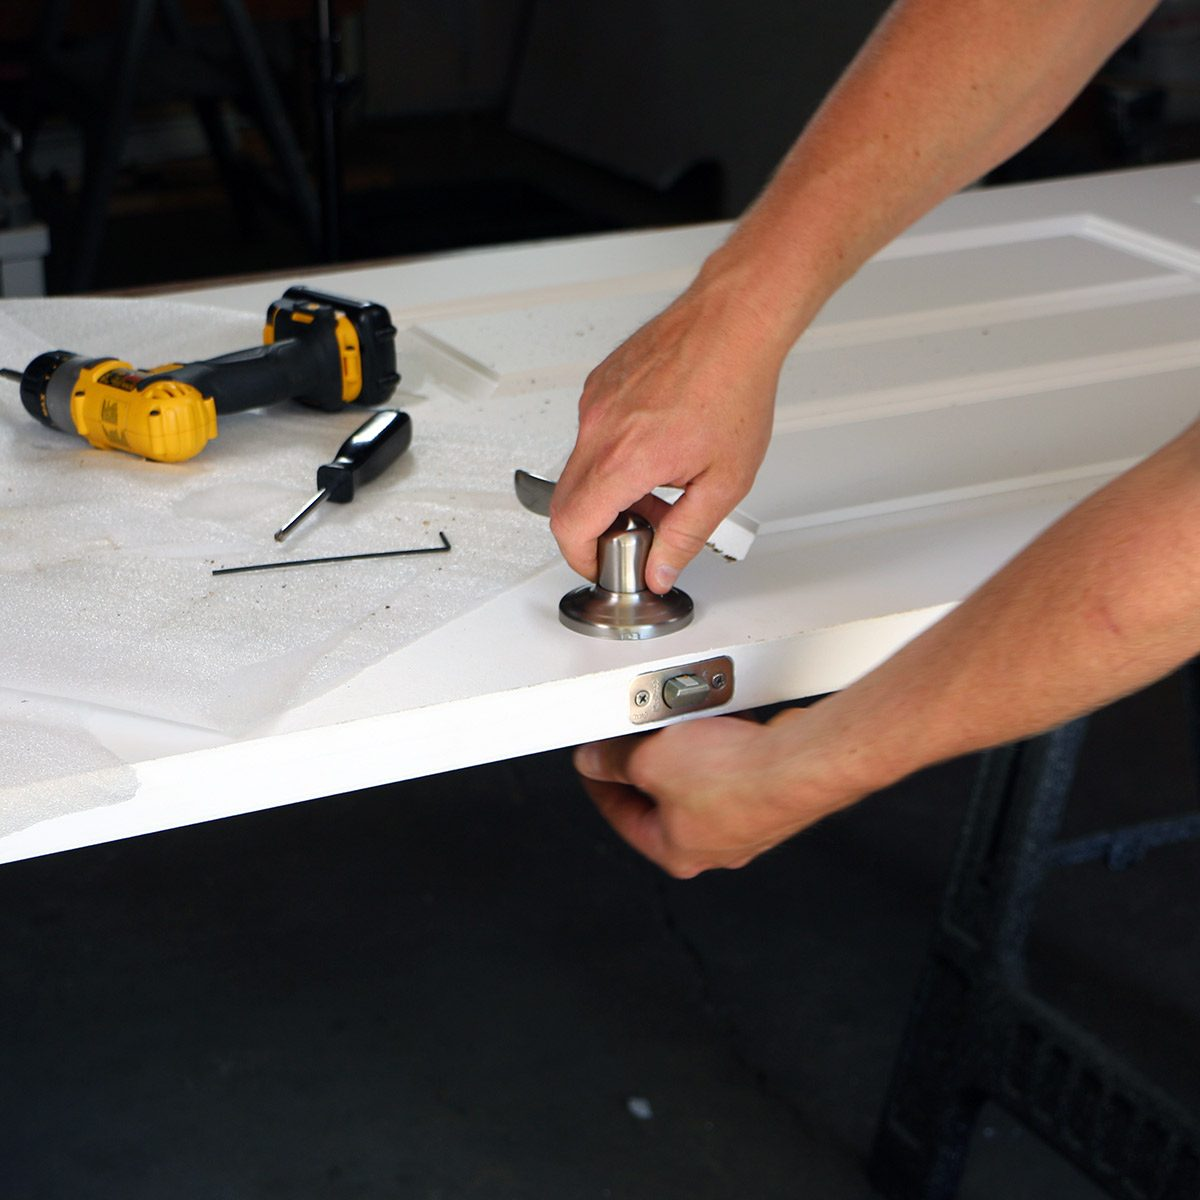 install the door latch and lever